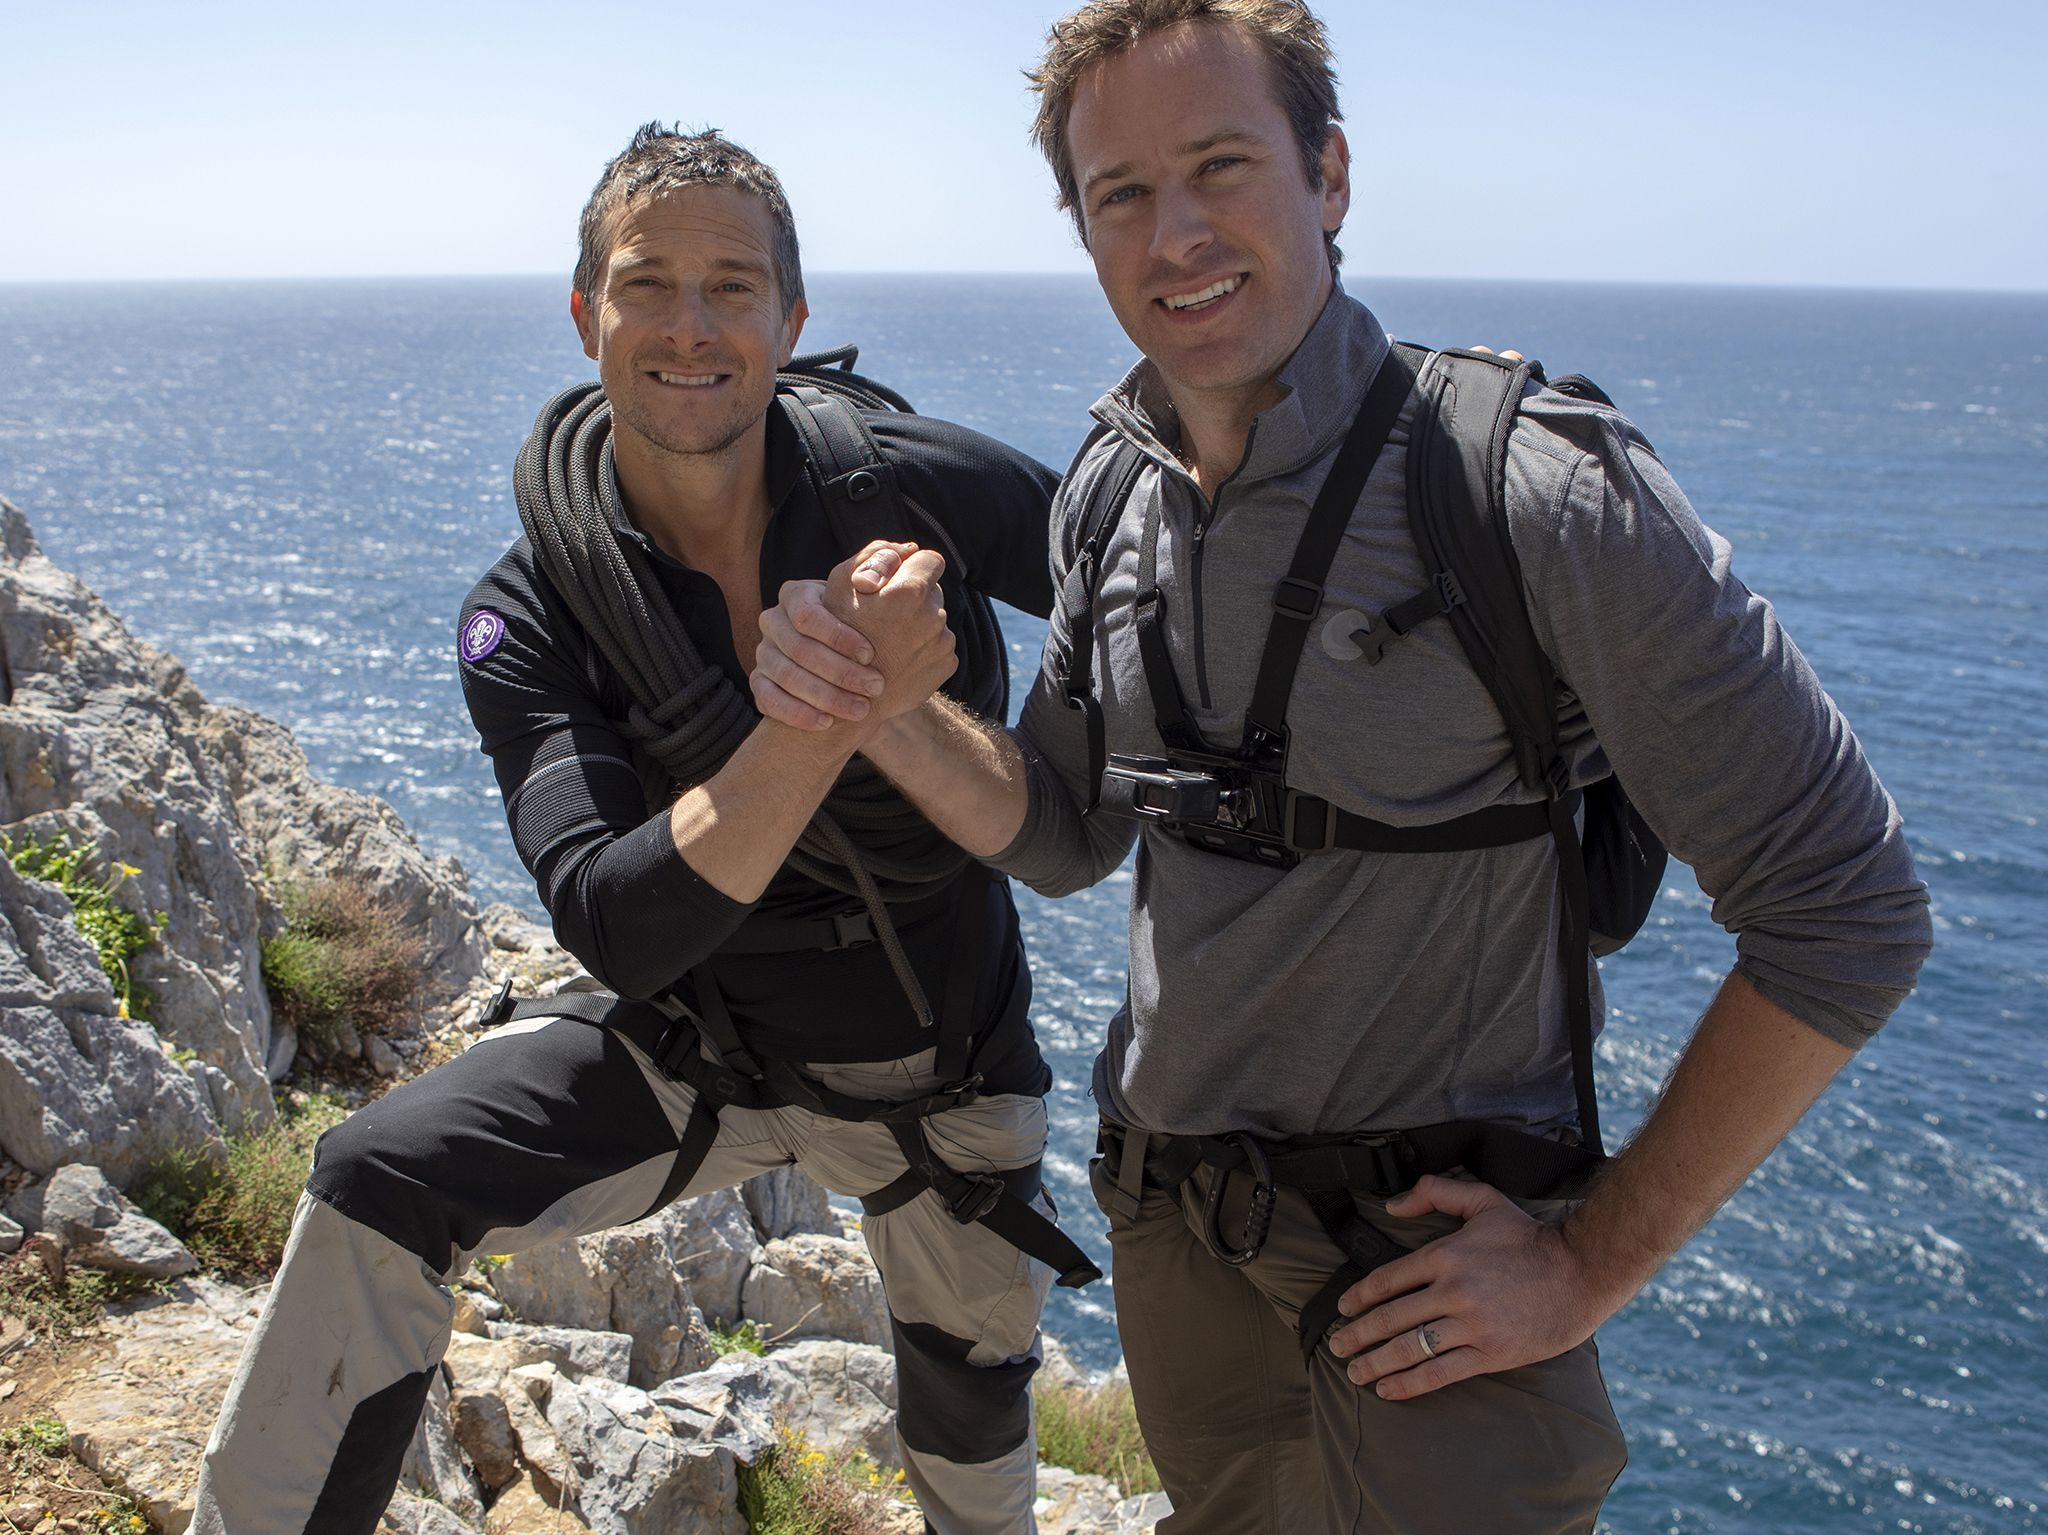 Sardinia, Italy: (L to R) Bear Grylls and Armie Hammer. This image is from Running Wild with... [Photo of the day - نوامبر 2019]